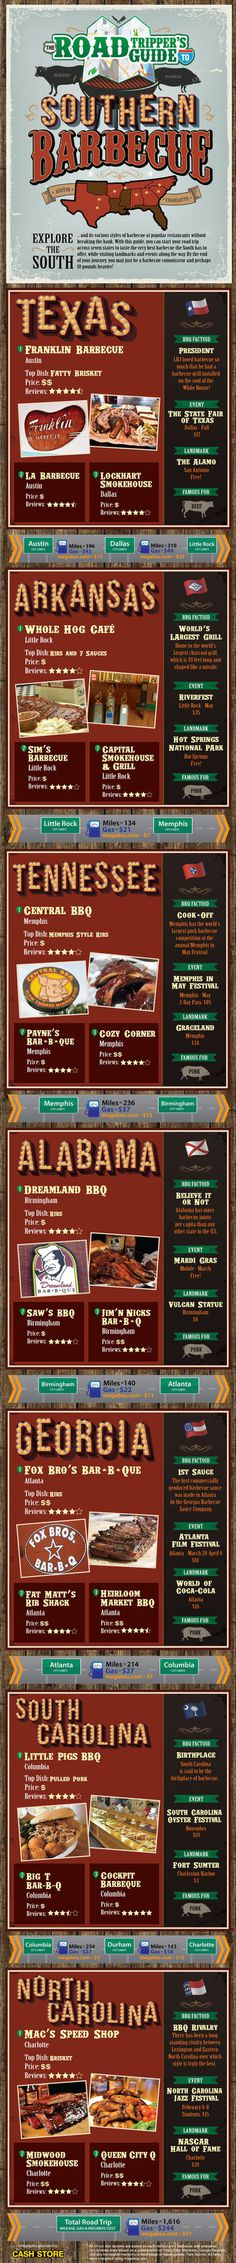 The Road Tripper's Guide to Southern Barbecue #north #carolina #alabama #infographic #vacation #road #food #trip #austin #texas #barbecue #arkansas #south #dallas #memphis #the #southern #bbq